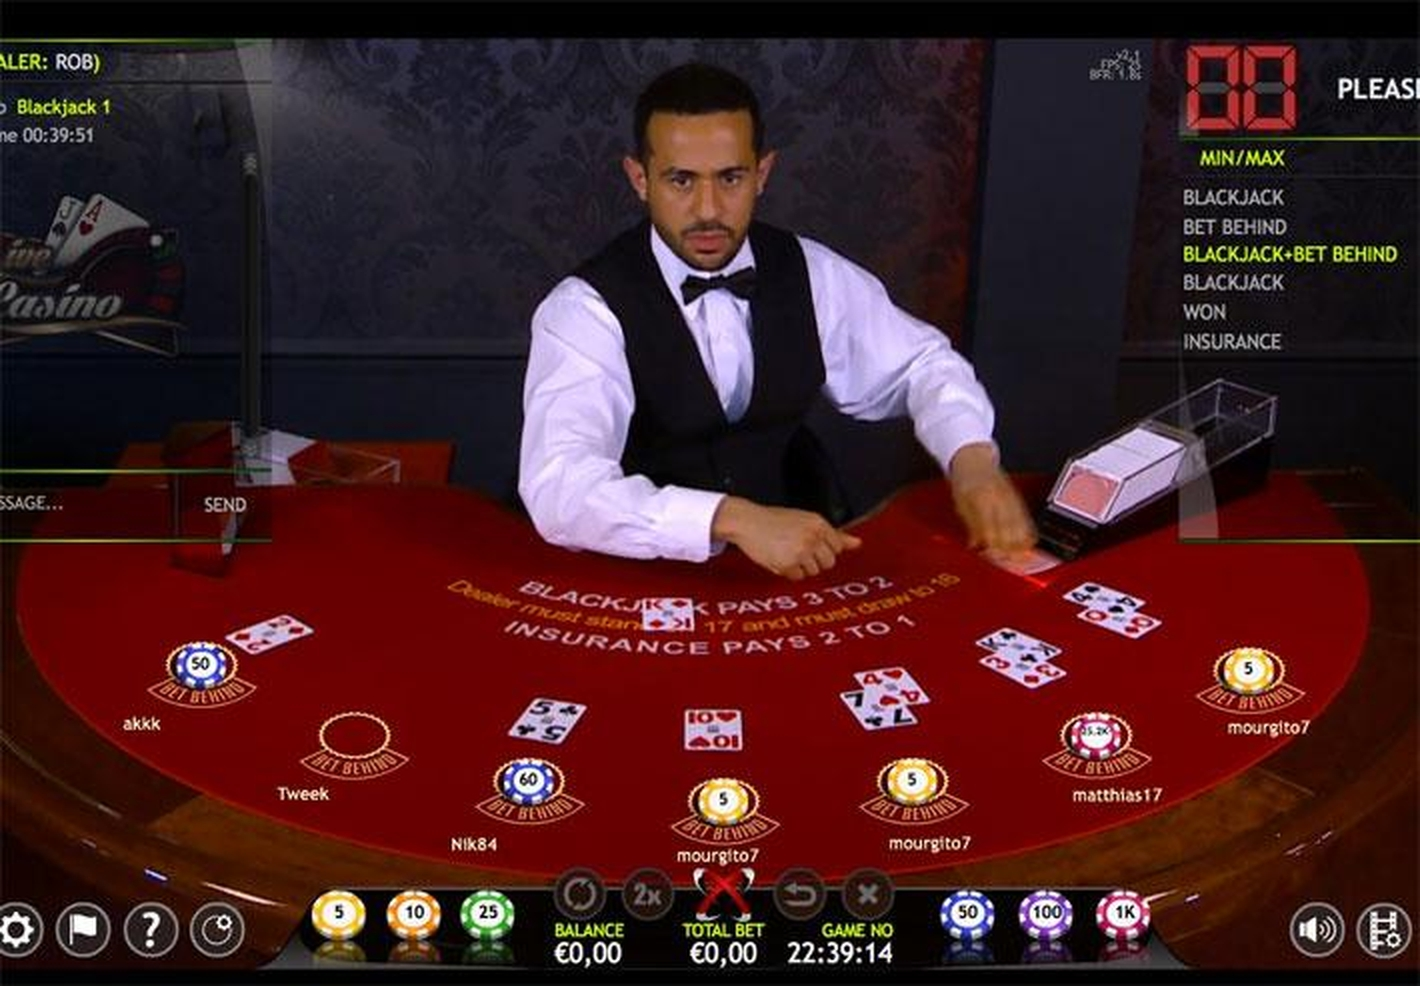 The Blackjack 2 Live Casino (Extreme Gaming) Online Slot Demo Game by Extreme Live Gaming